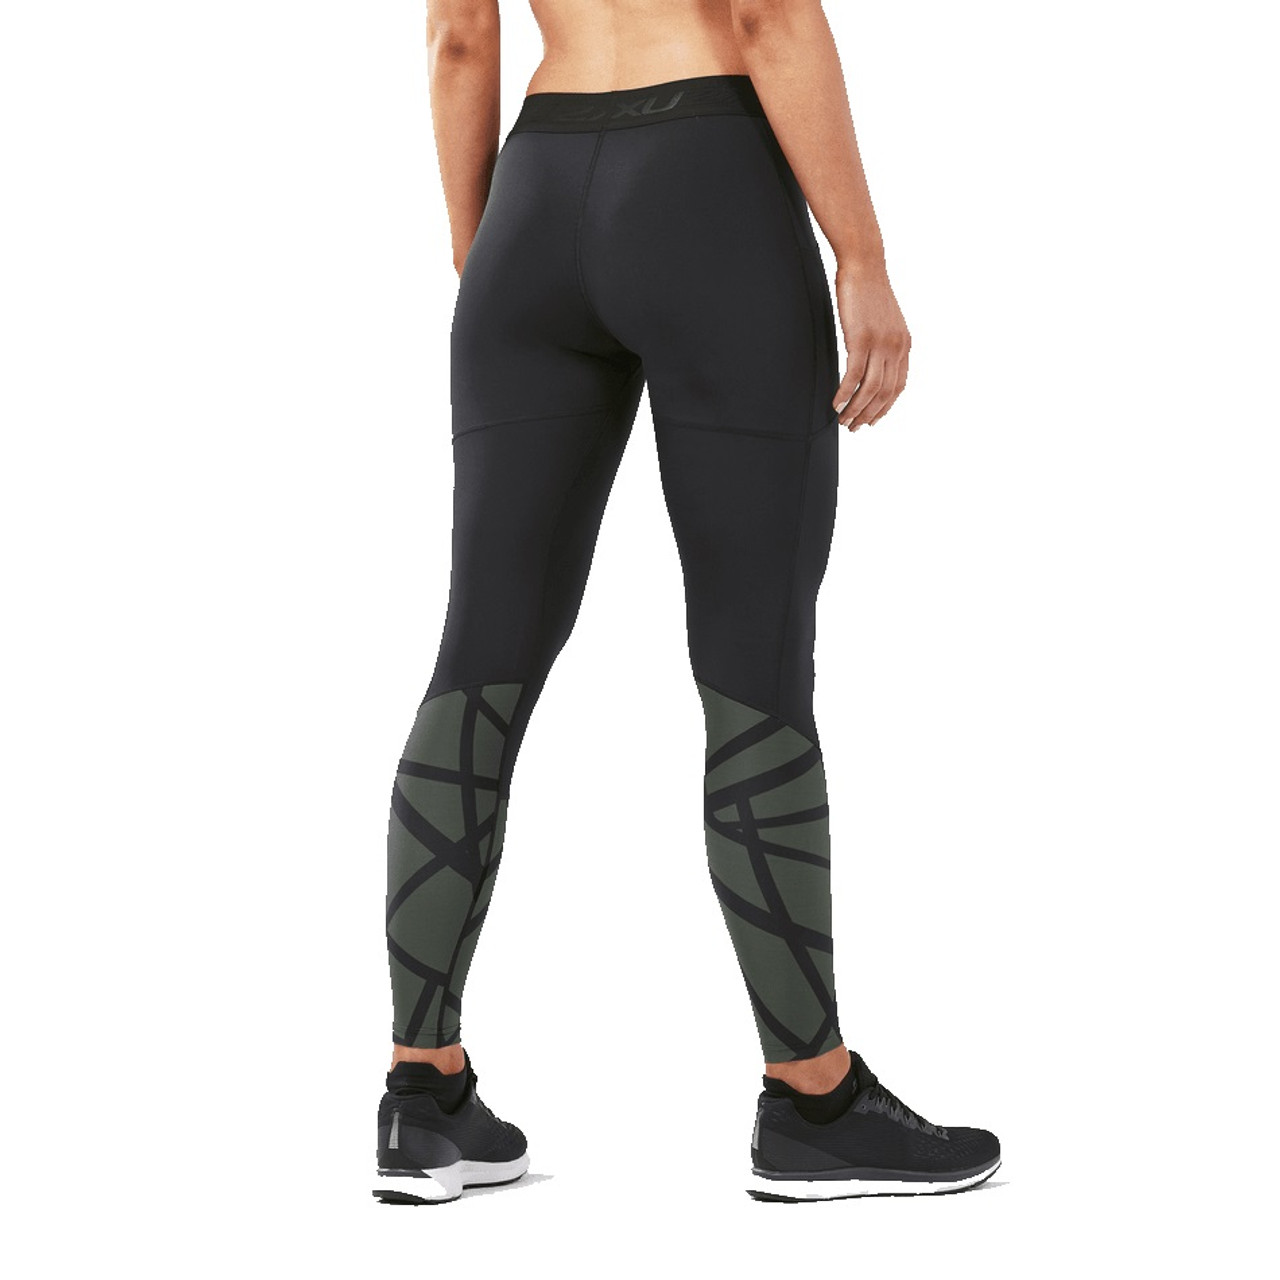 c83fe27d7c ... 2XU Women's Accelerate Compression Tight with Storage - Back